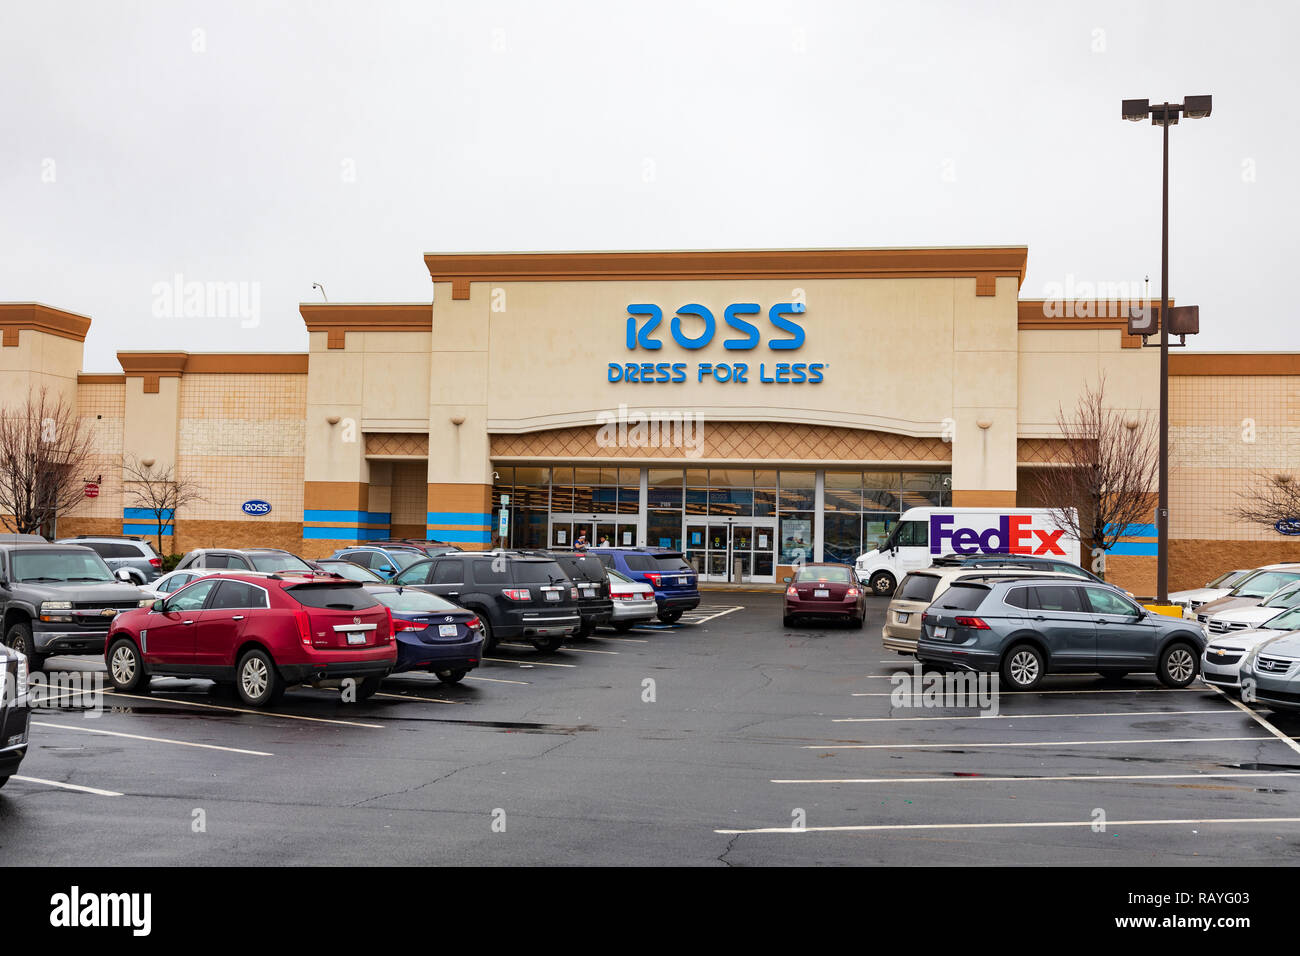 05e675bc7a7 Ross Store Stock Photos   Ross Store Stock Images - Alamy